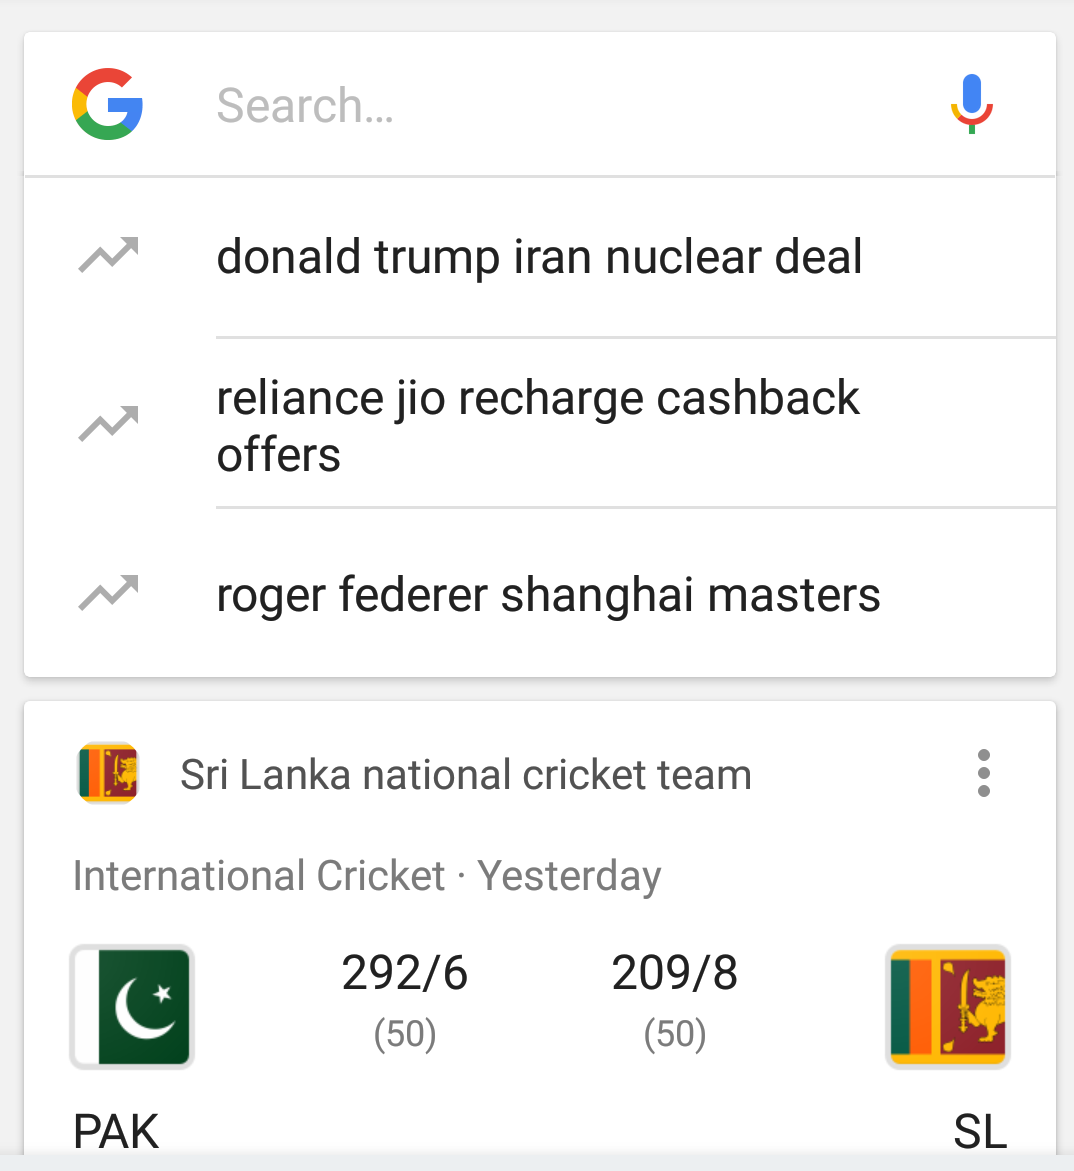 Trending searches image in Google